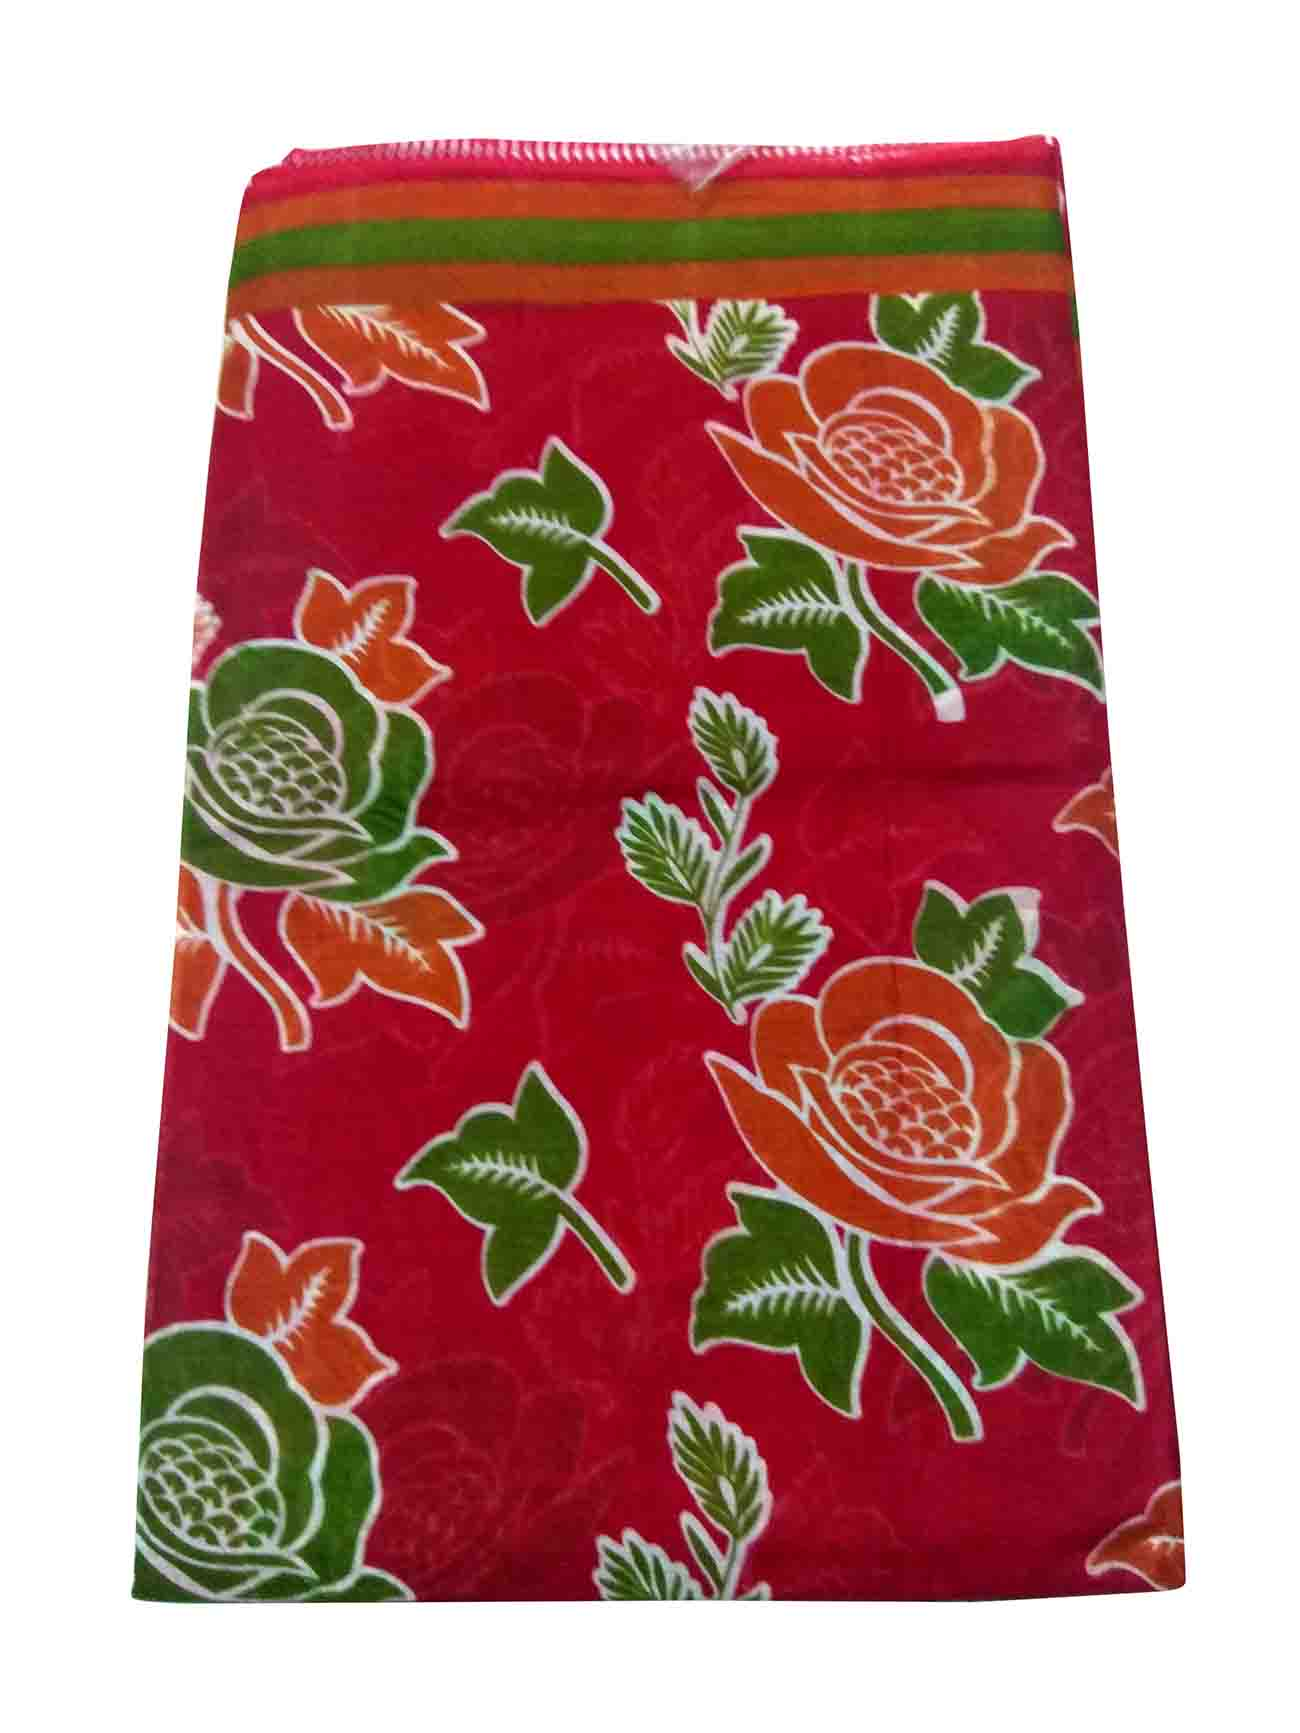 WMN COTTON SAREE WITHOUT BLOUSE-RED-AT CTN PRINT DNO 7